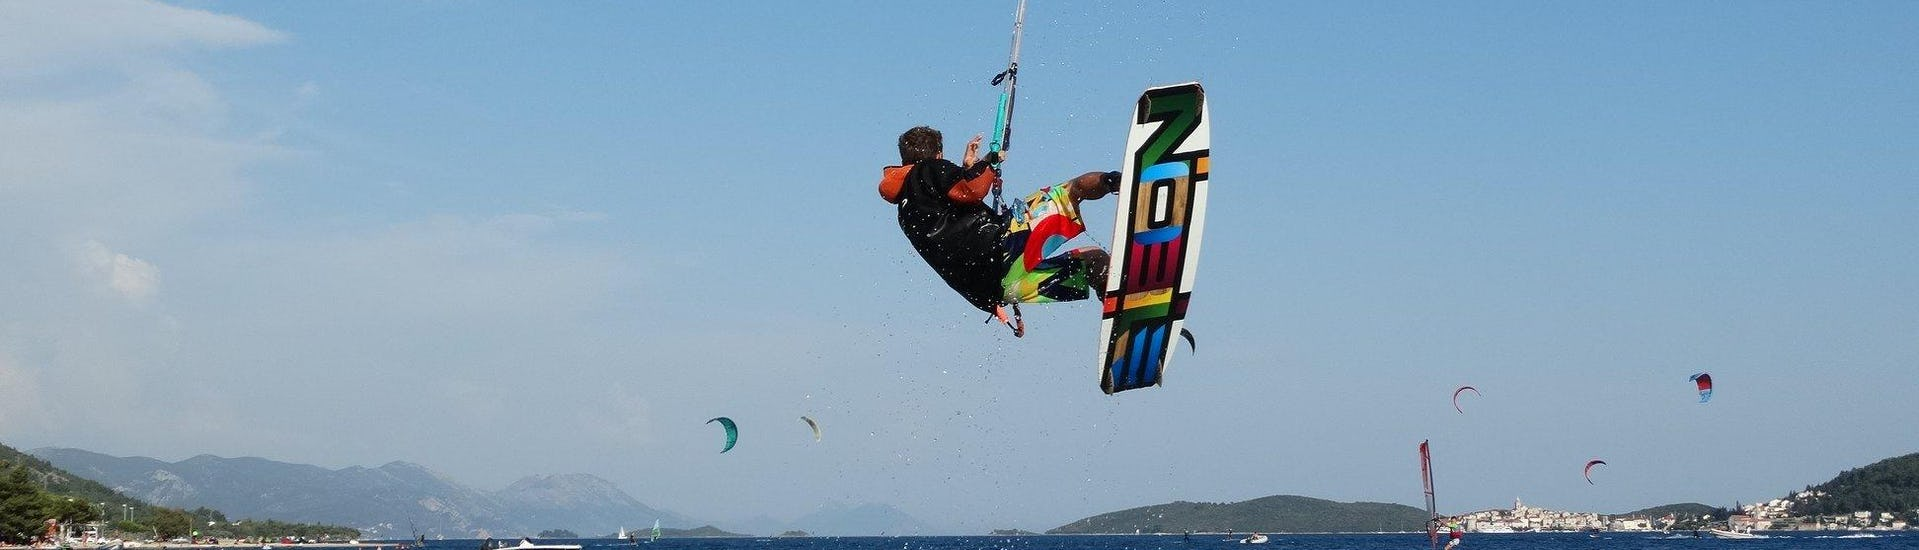 Private Kitesurfing Lessons - All Levels